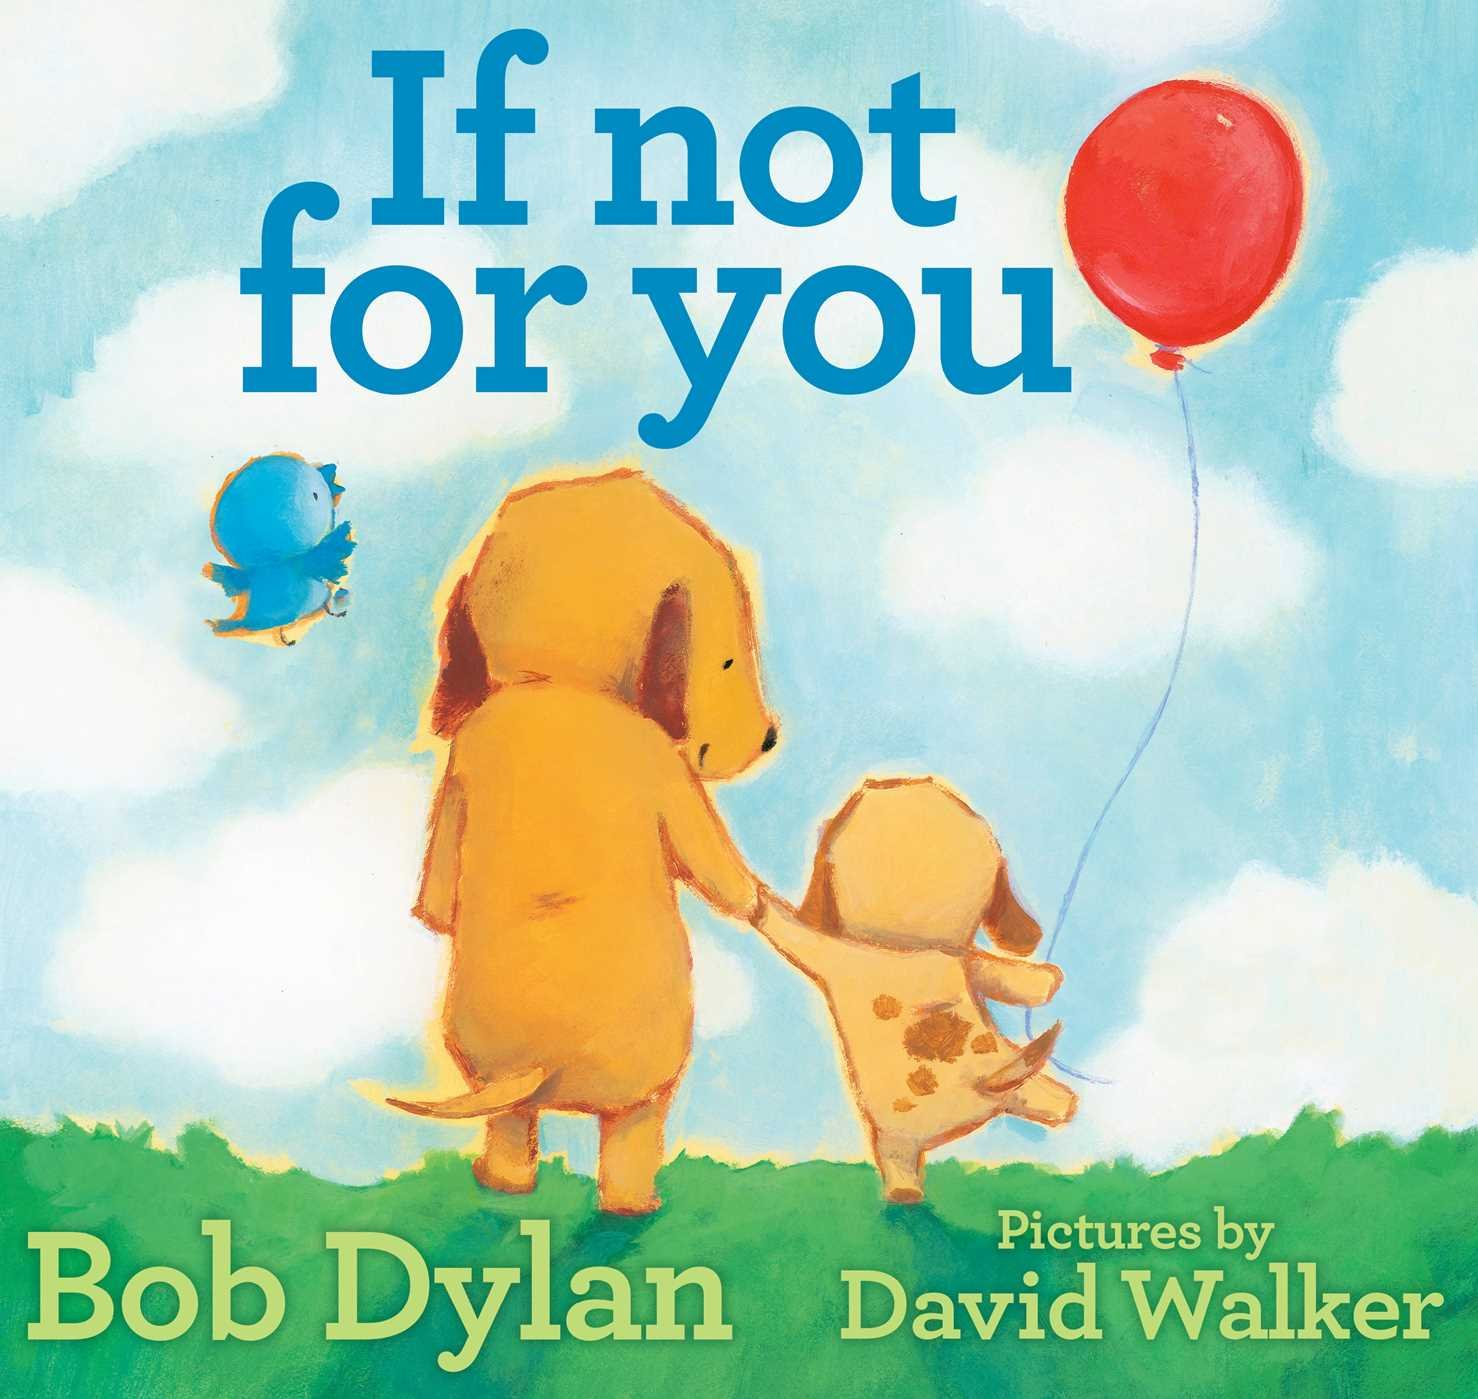 If Not You Bob Dylan